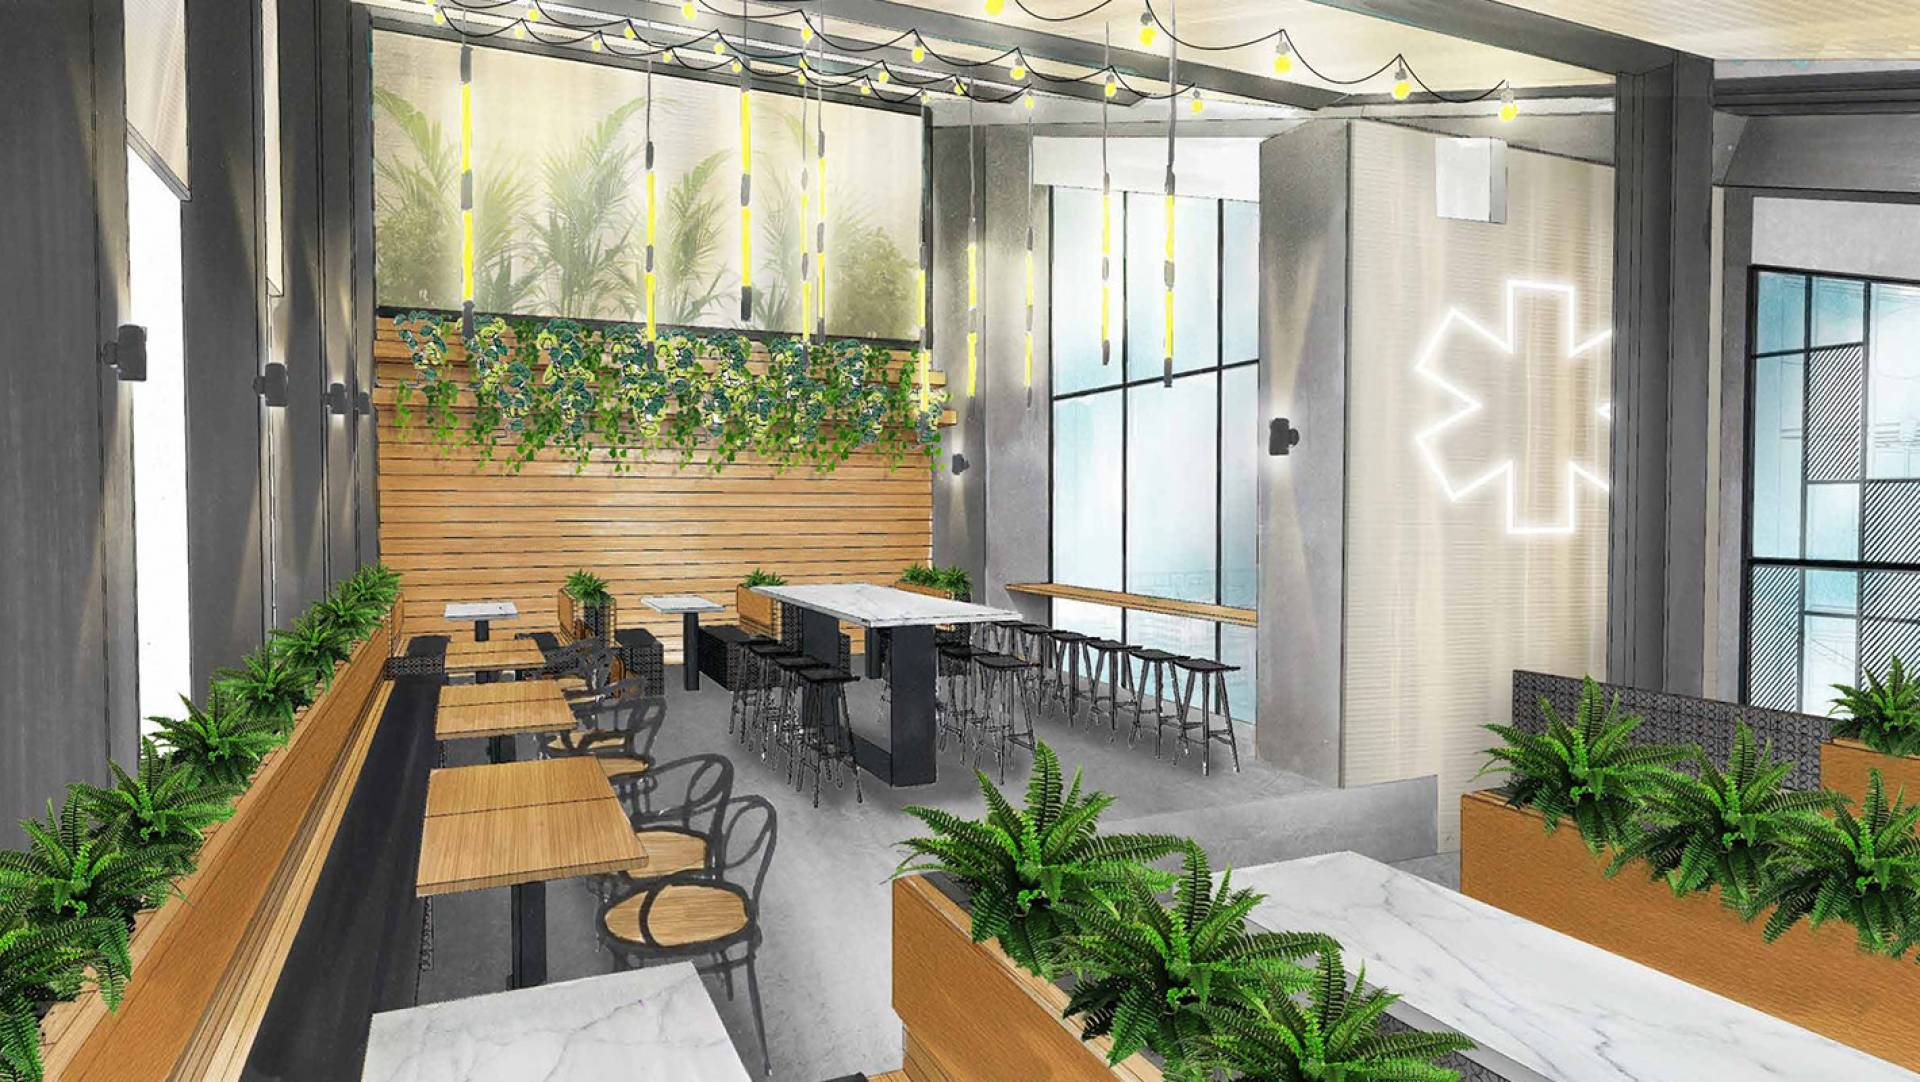 Cafe Restaurant Design Melbourne-Riddik Cafe Restaurant Lower Templestowe